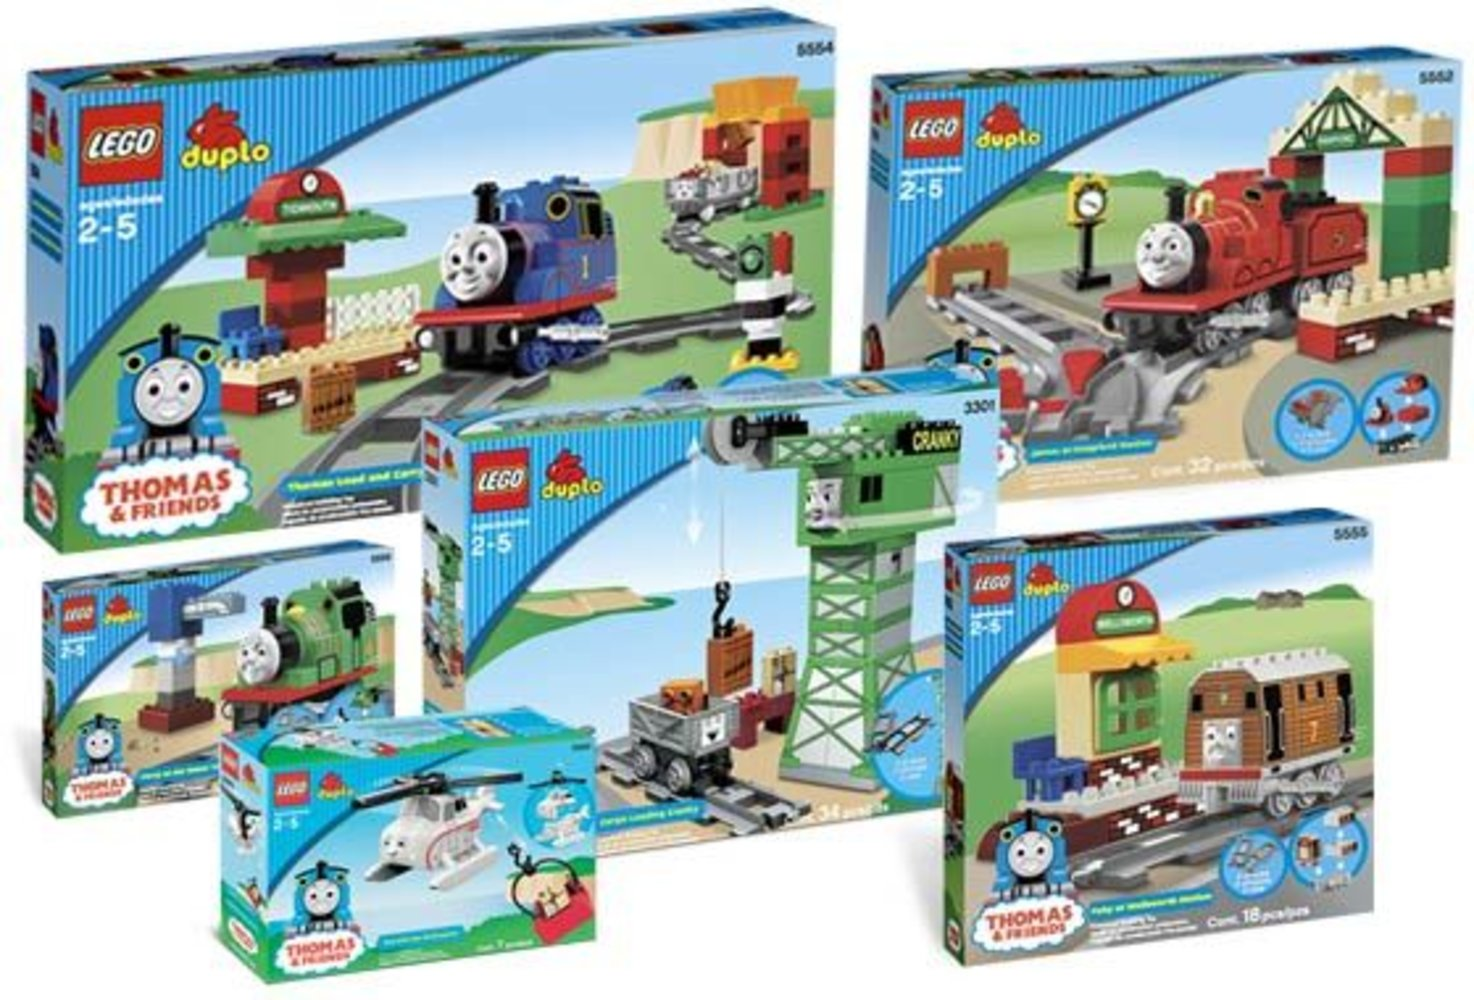 Island of Sodor Collection